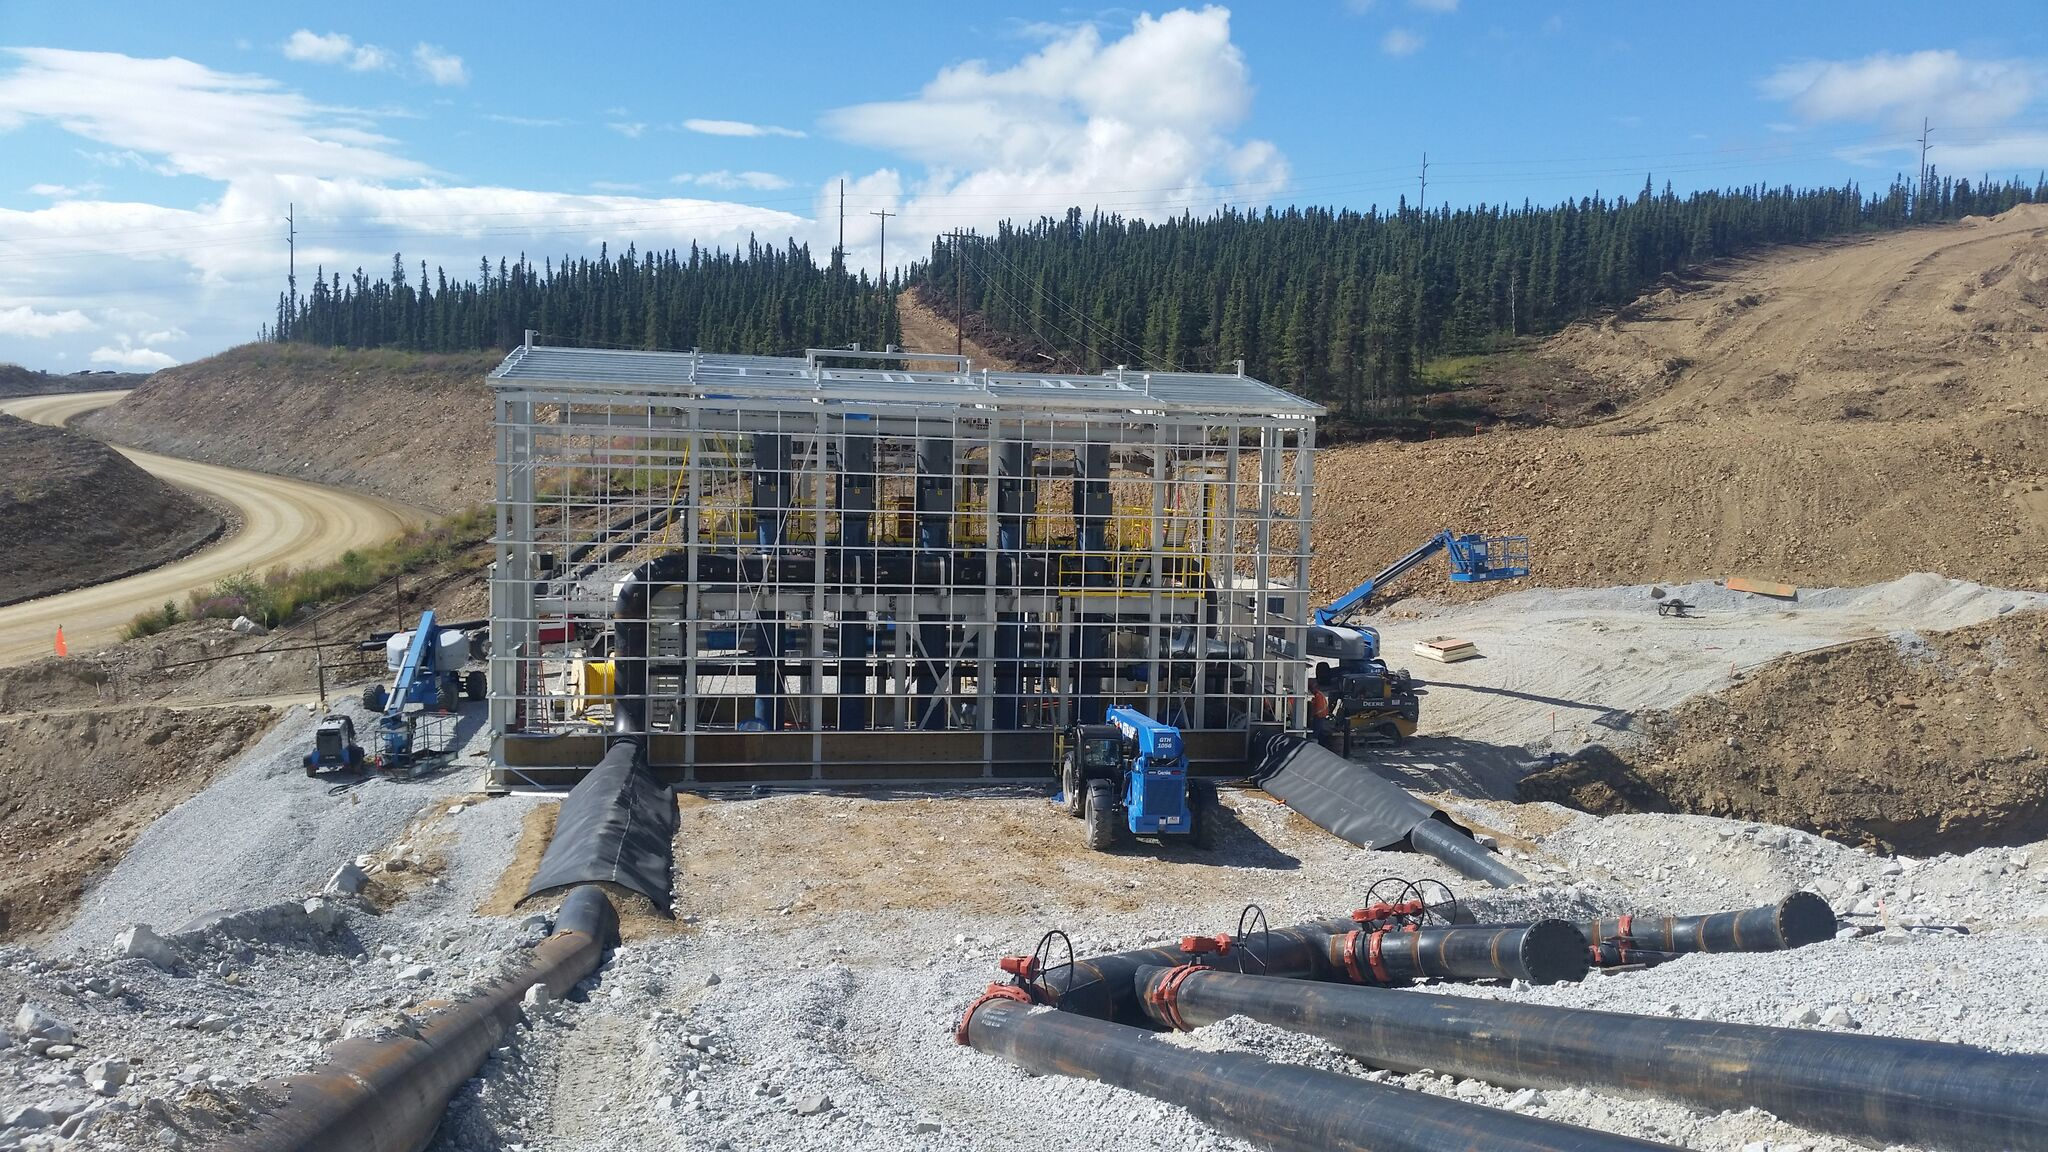 Booster pump stations: photo, equipment, construction